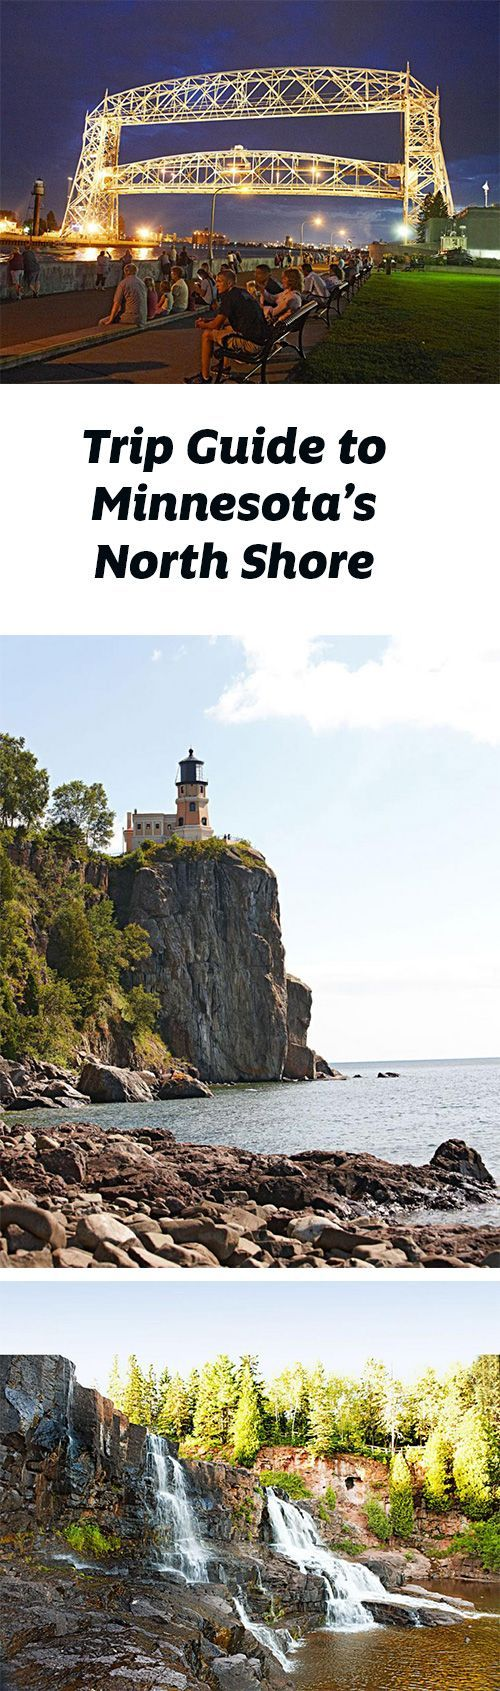 Sprawling parks and maritime marvels line Minnesota's Lake Superior shore between Duluth and Grand Portage. Trip guide: http://www.midwestliving.com/travel/minnesota/north-shore/north-shore-trip-guide/